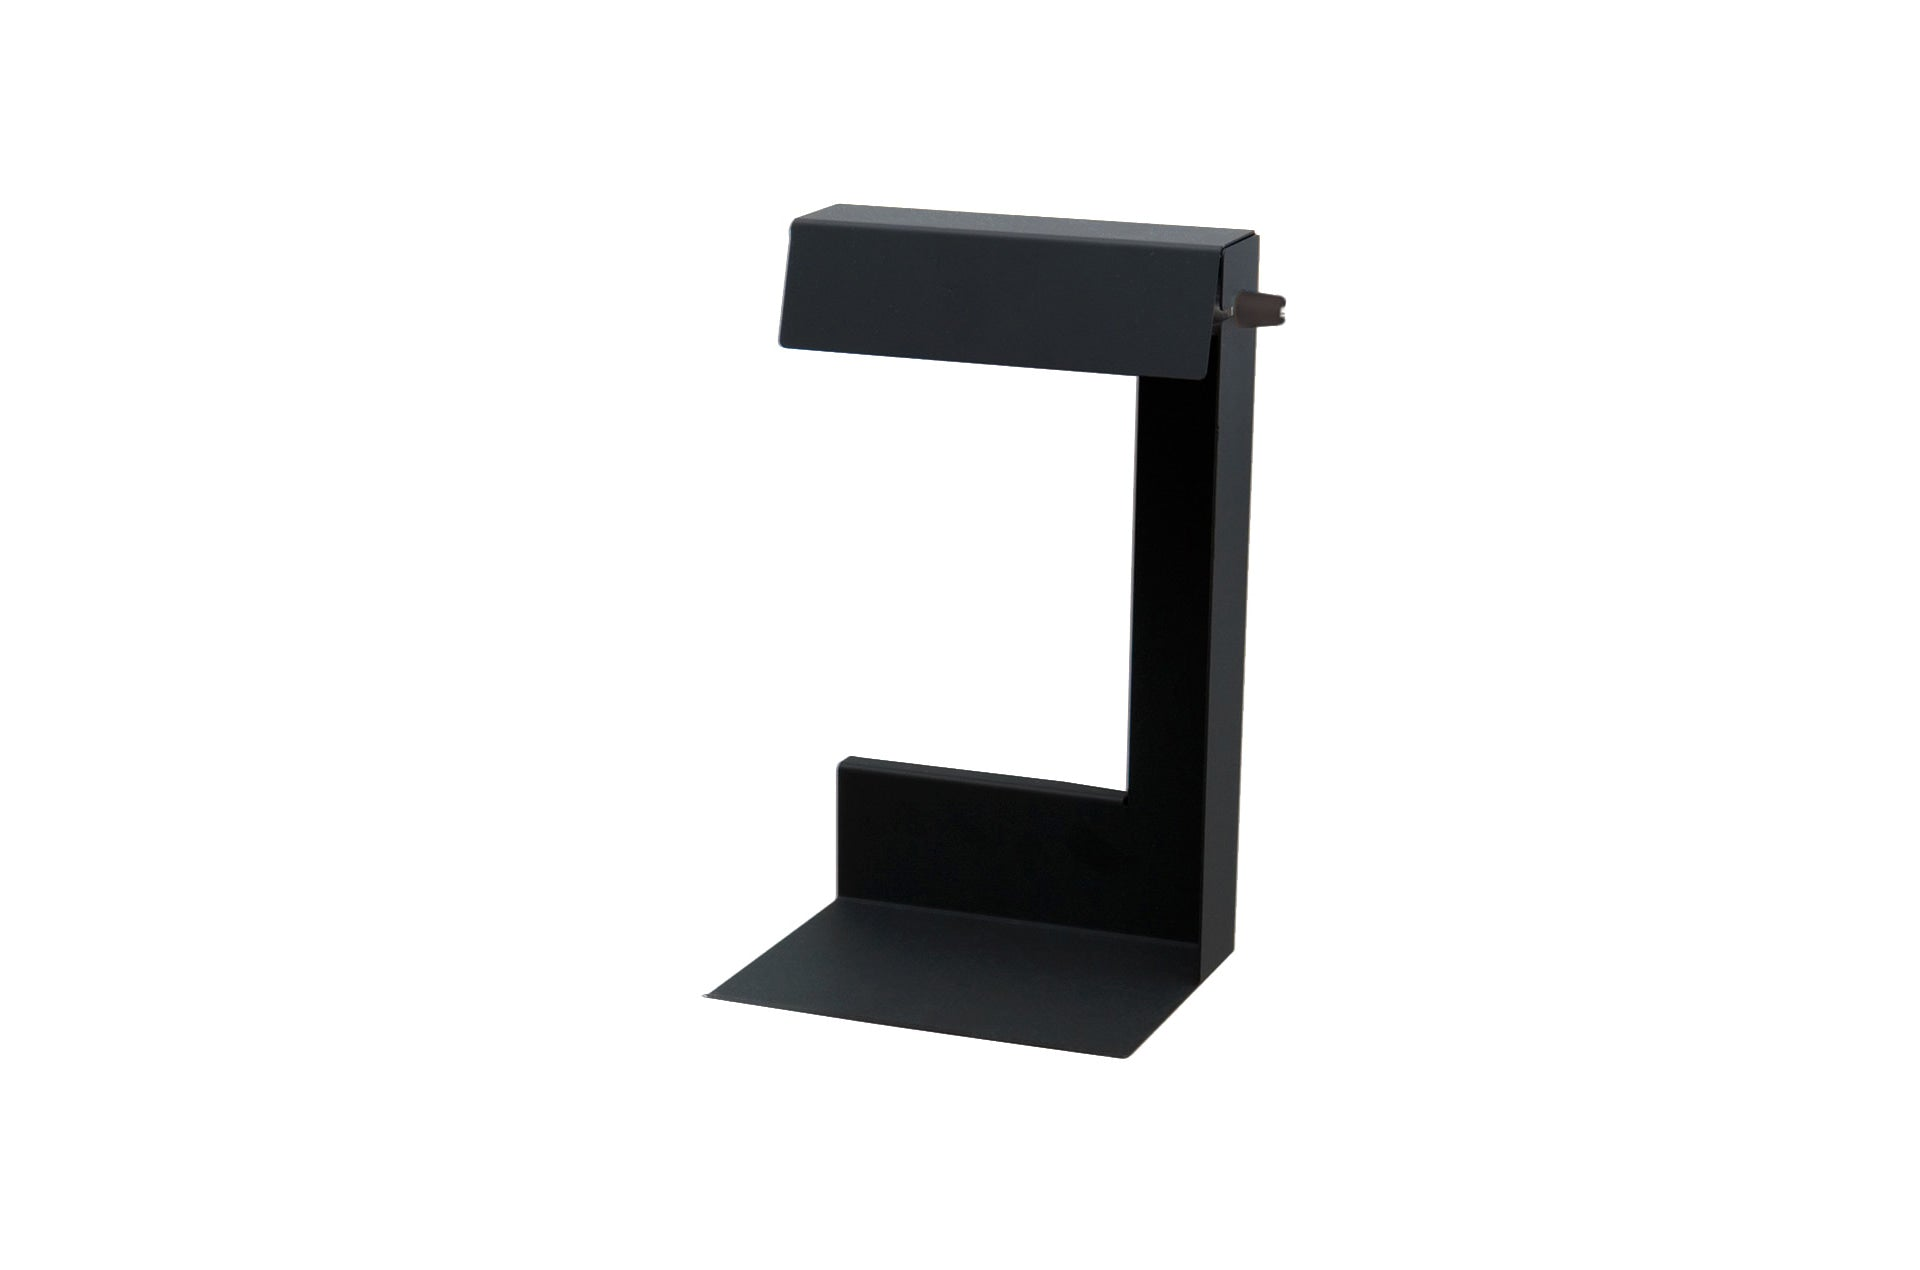 Lampe de table Right noir by Julian Appelius-PARIDEO design durable